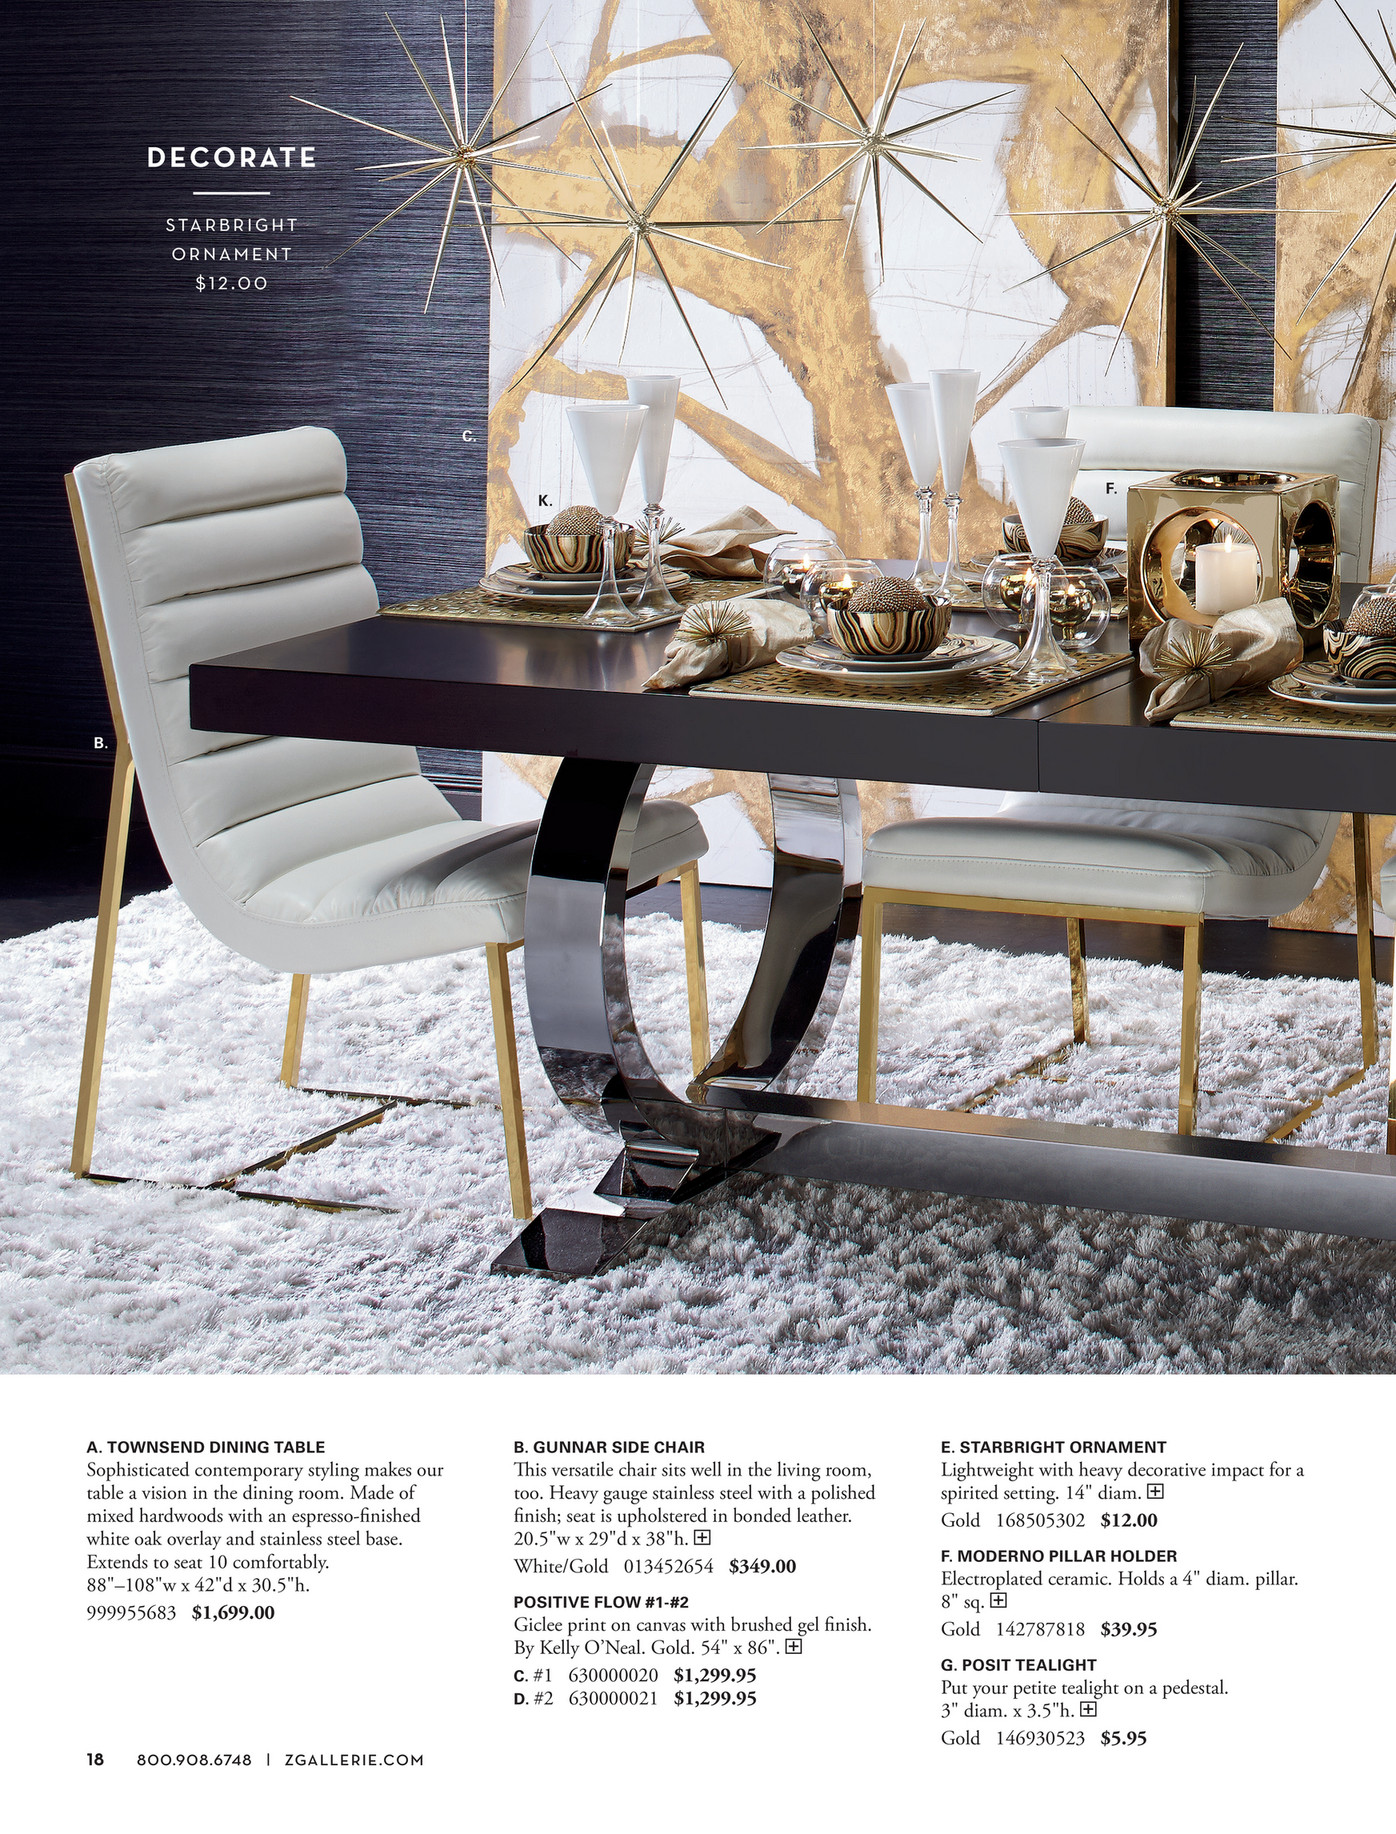 Z Gallerie Decorate Entertain Give Townsend Dining Table